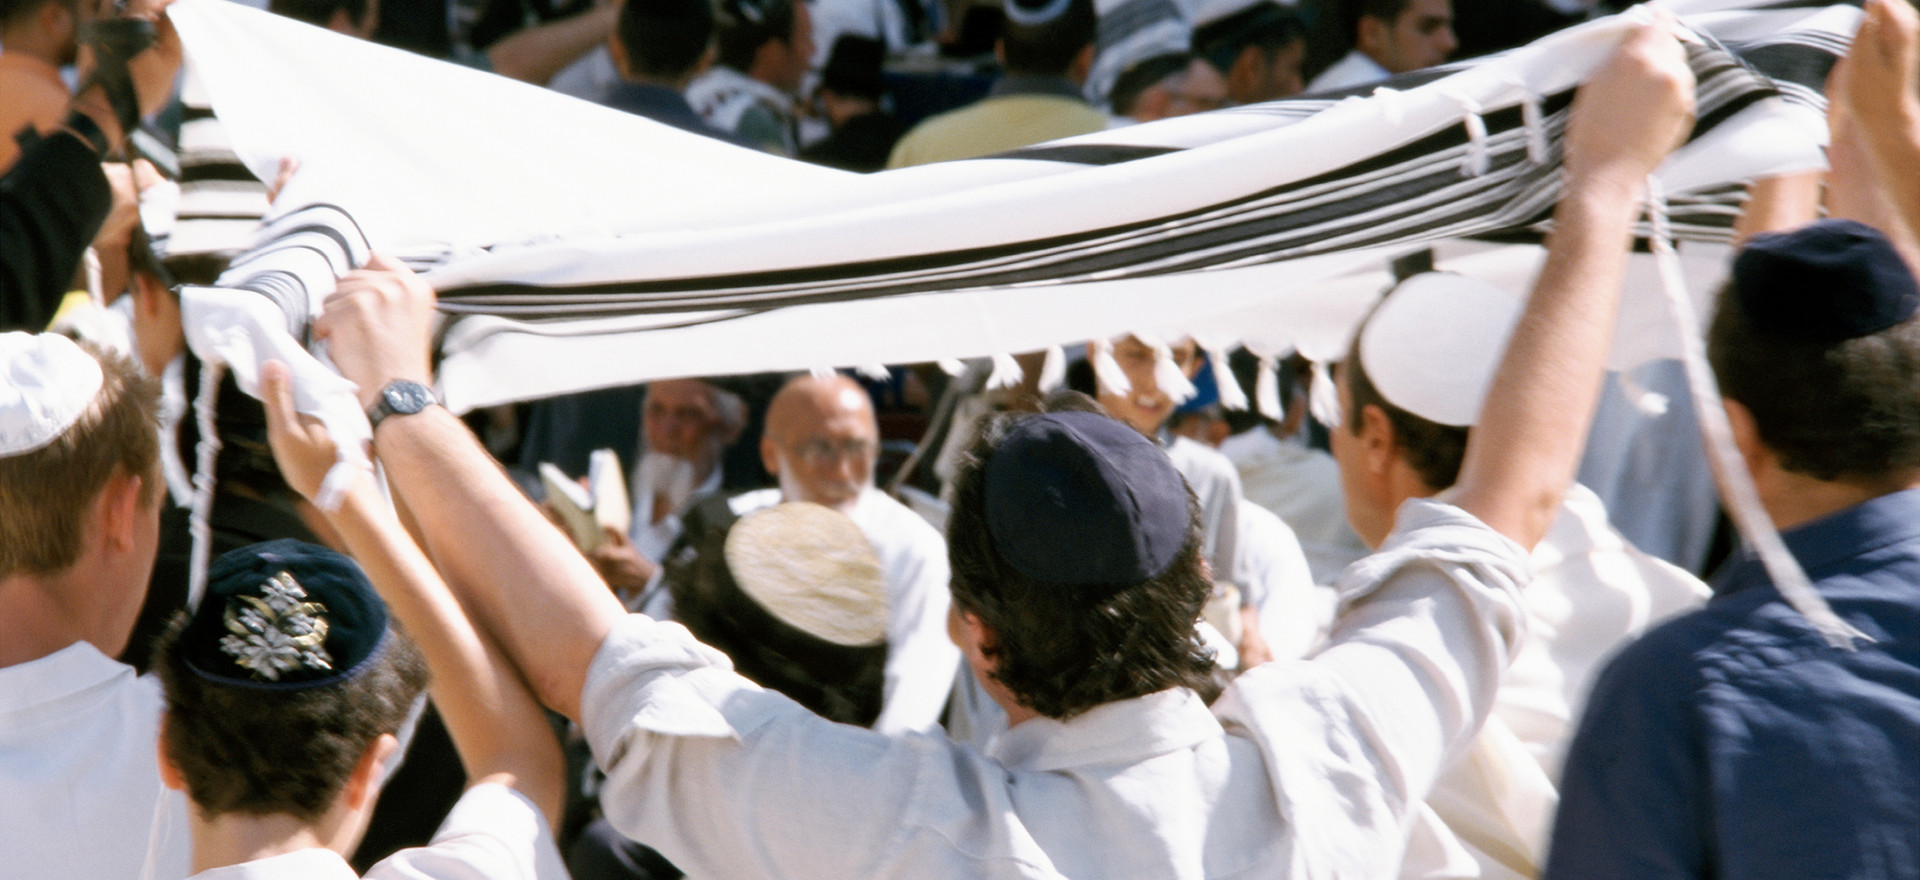 Western Wall Bar MItzvah